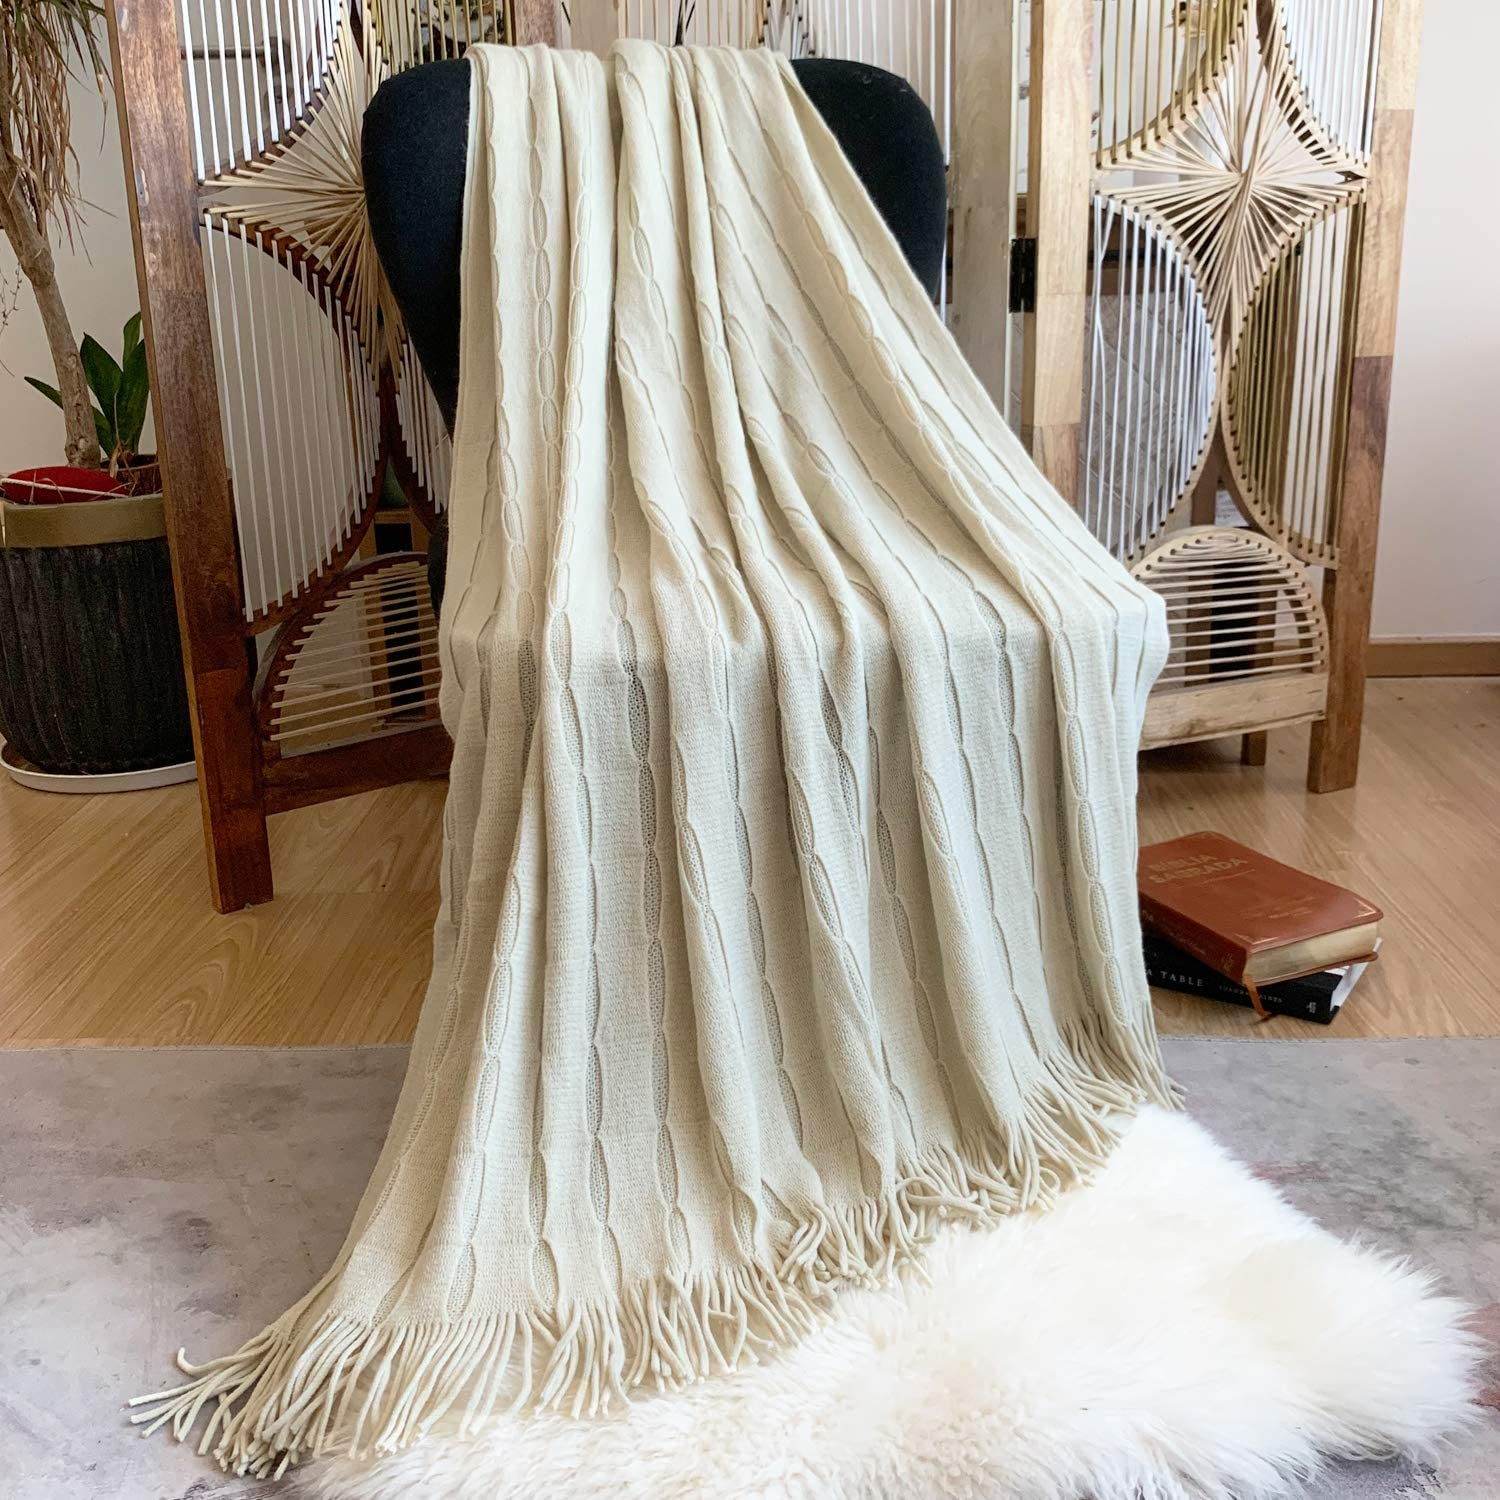 """DISSA Knitted Blanket Textured Solid Super Soft Decorative Throw Blanket with Tassels Cozy Plush Lightweight Fluffy Woven Blanket for Bed Sofa Couch Living Bed Room (Mustard Yellow, 60""""x80""""): Home & Kitchen"""